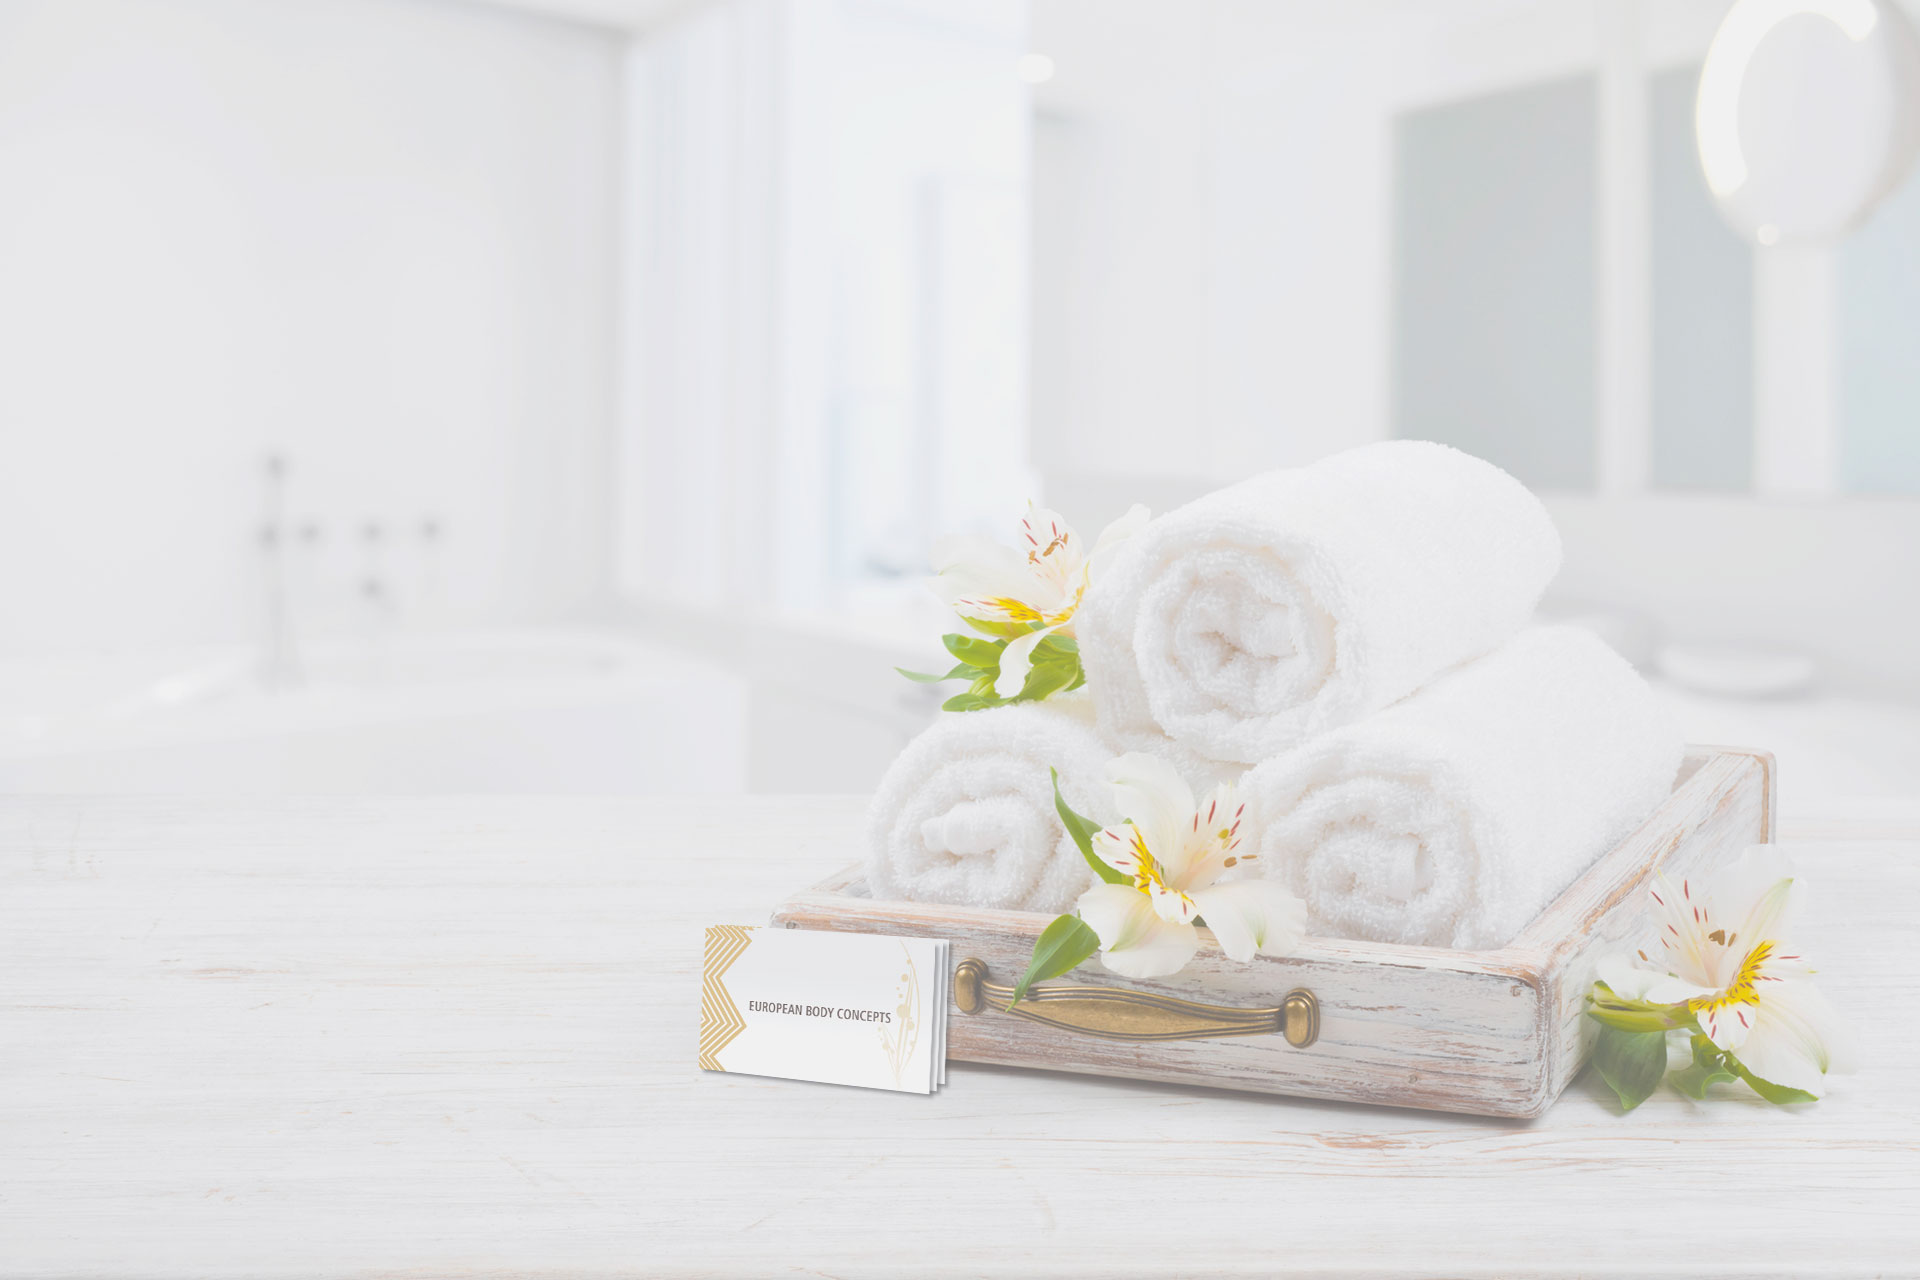 White spa towels in a tray